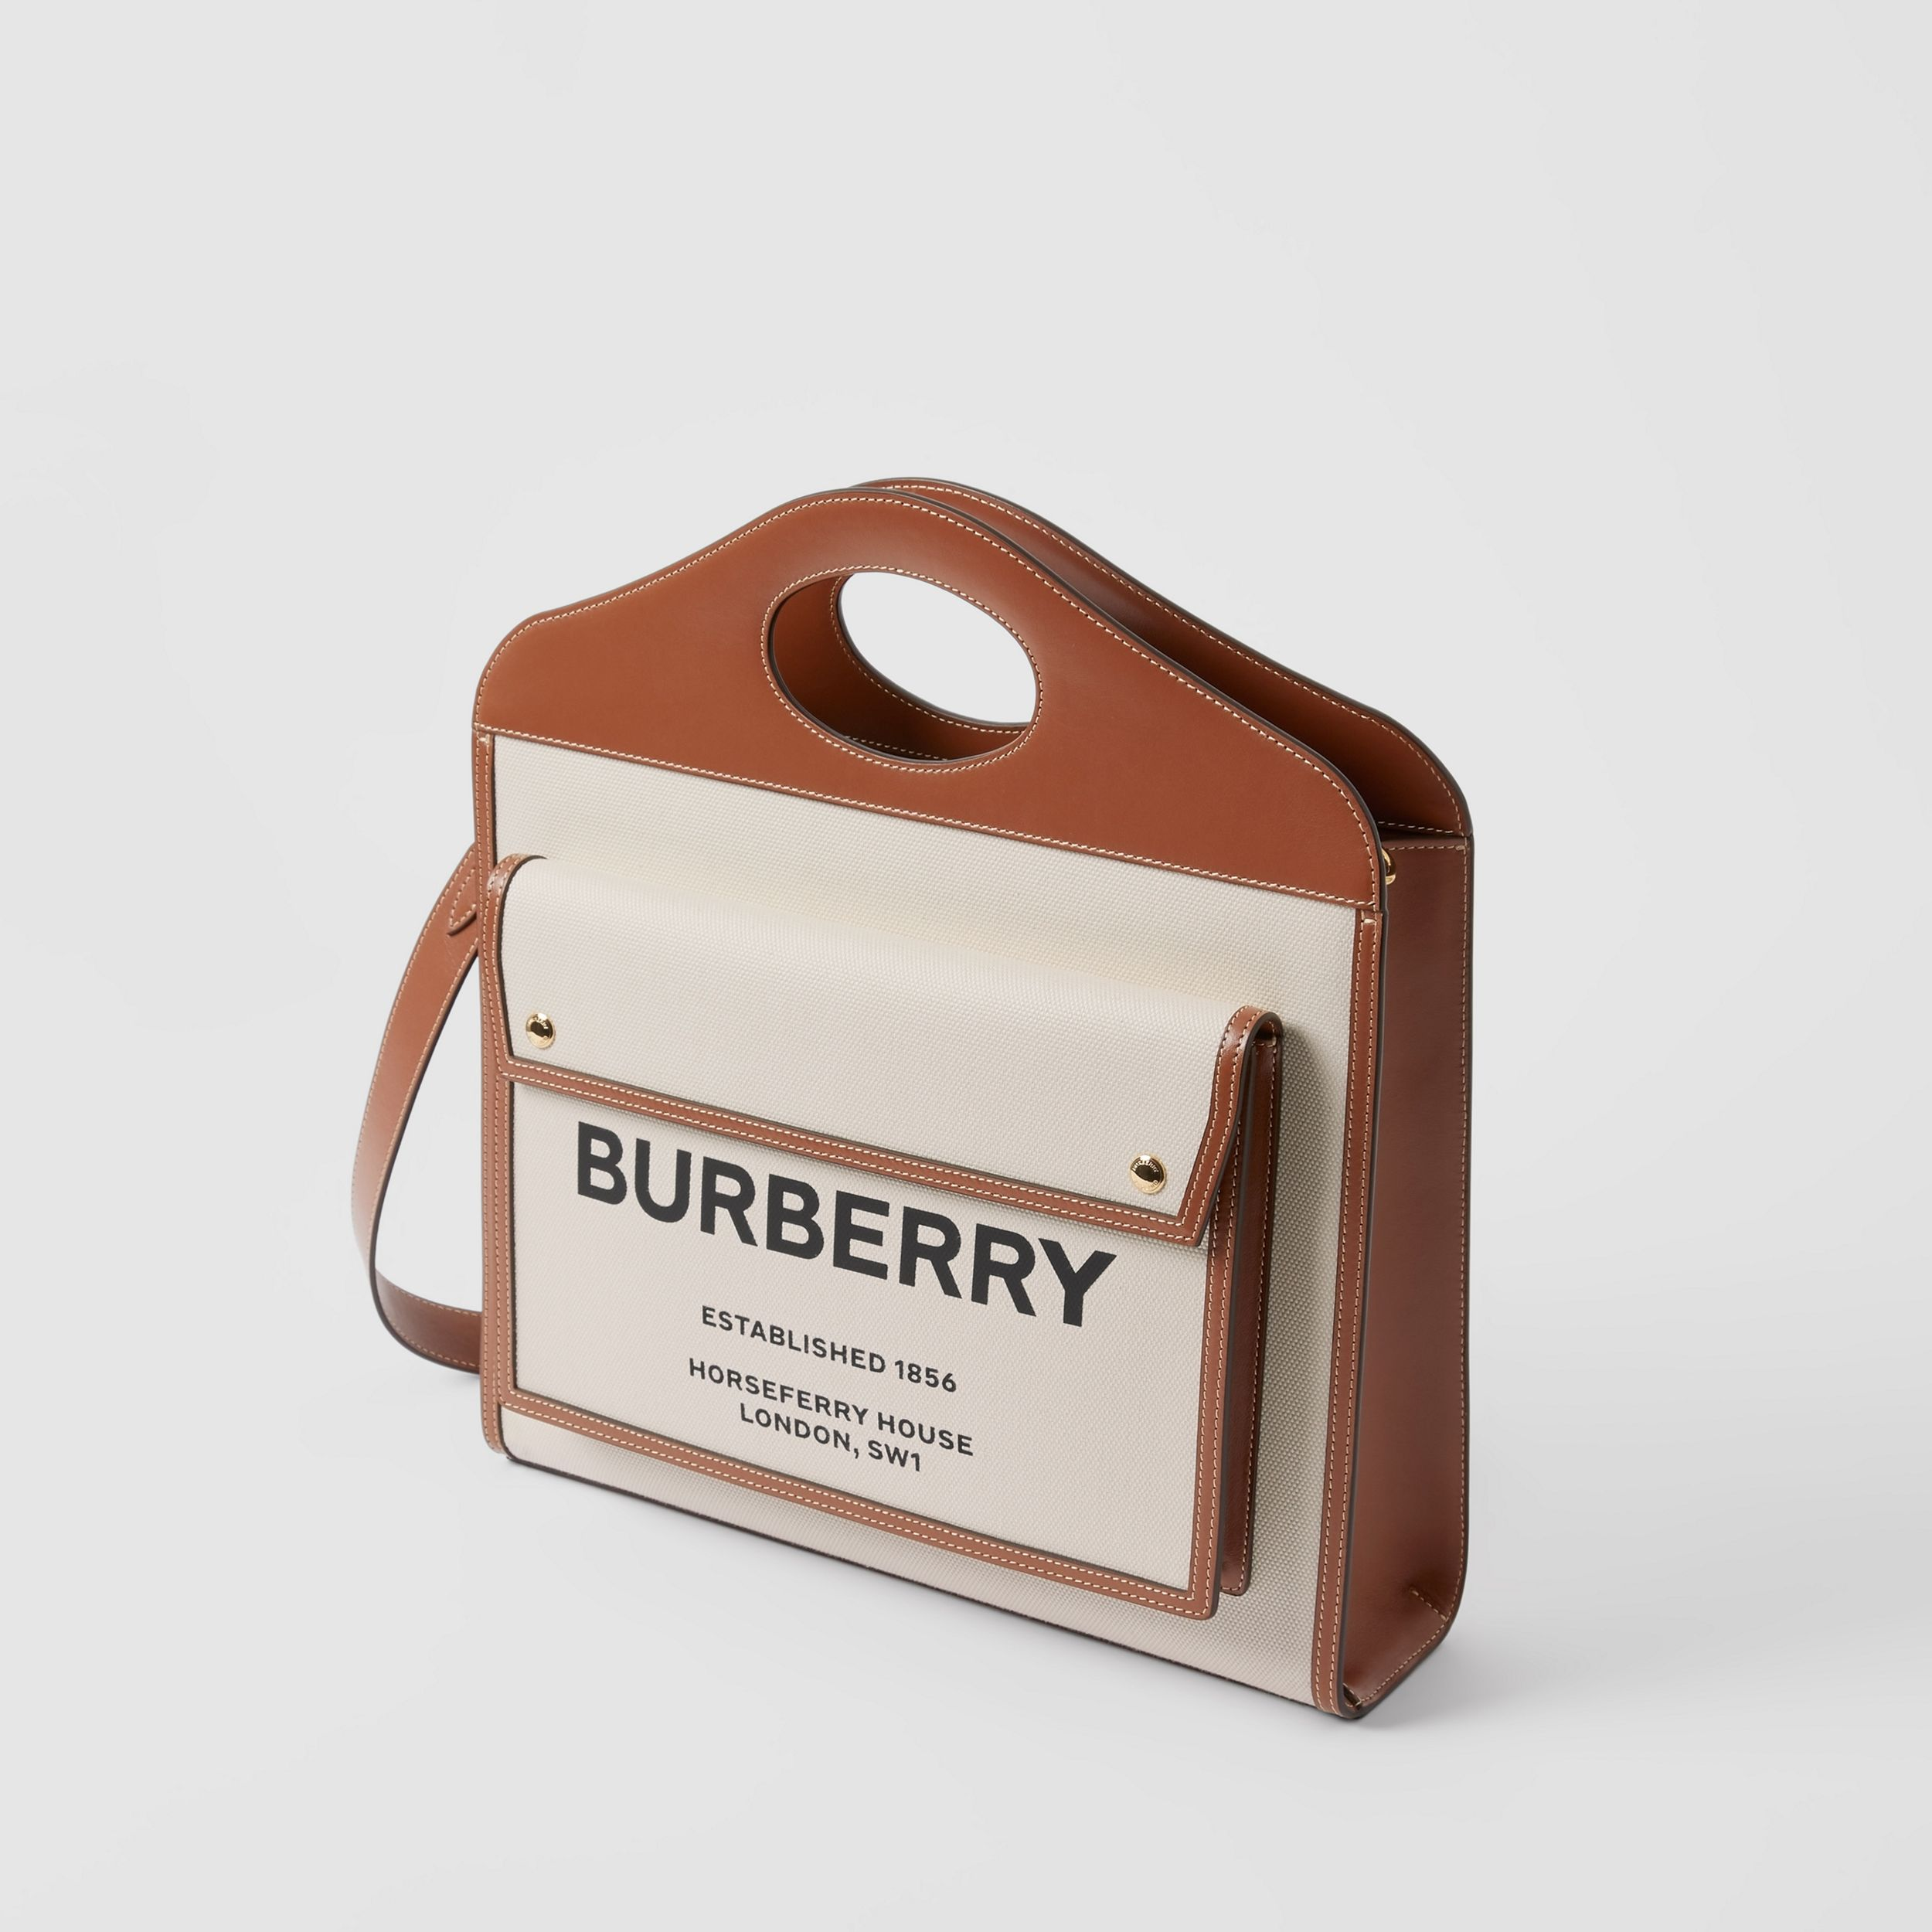 Borsa Pocket media bicolore in tela e pelle (Naturale/marrone Malto) - Donna | Burberry - 3